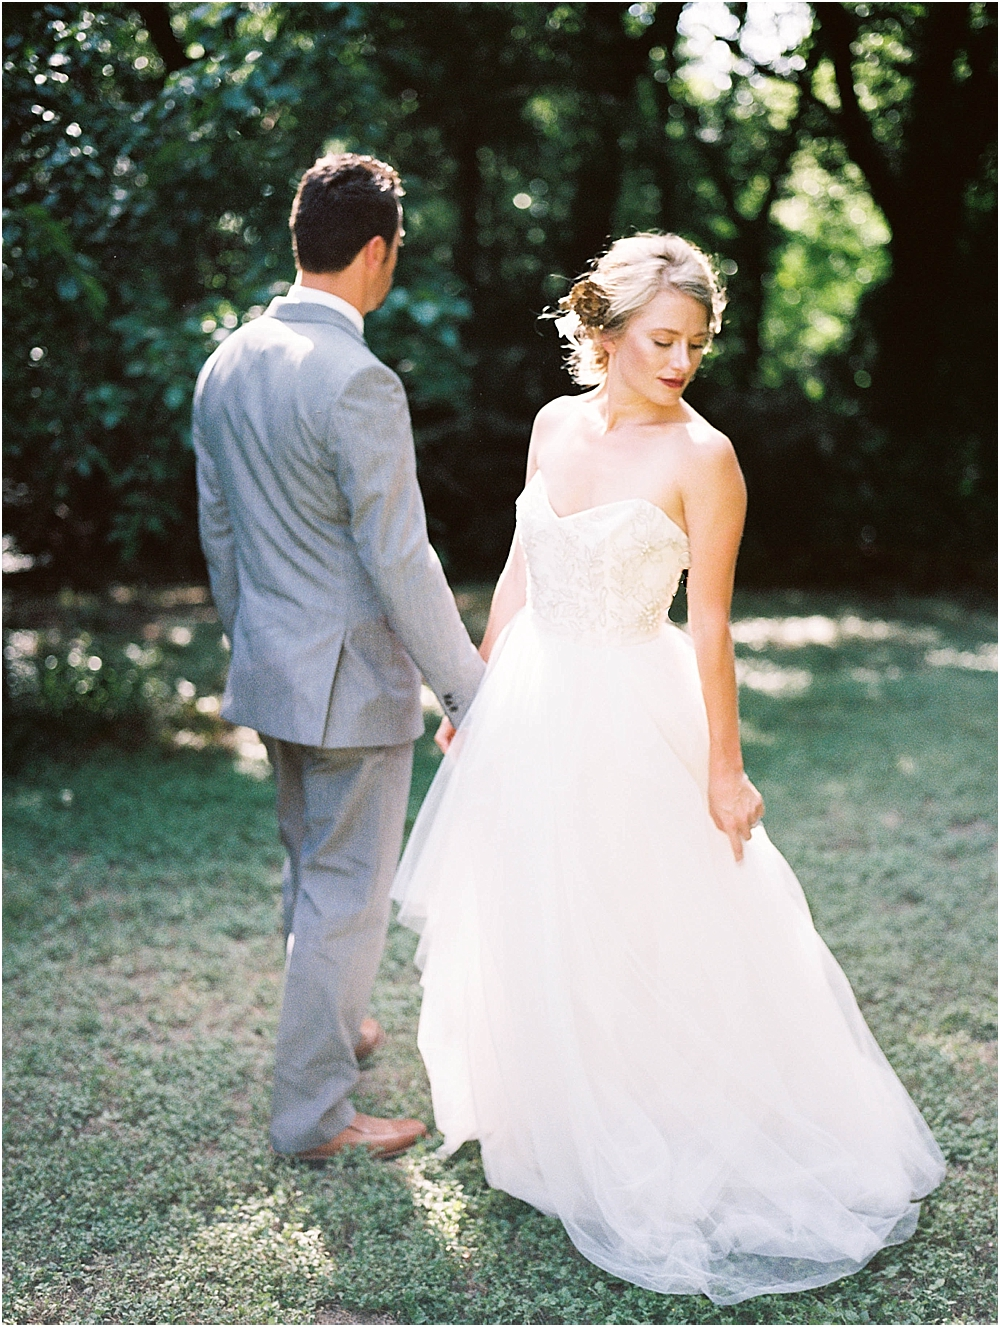 Fine Art Film Wedding Photography | Sarah Carpenter Wedding Photography | Destinations Worldwide